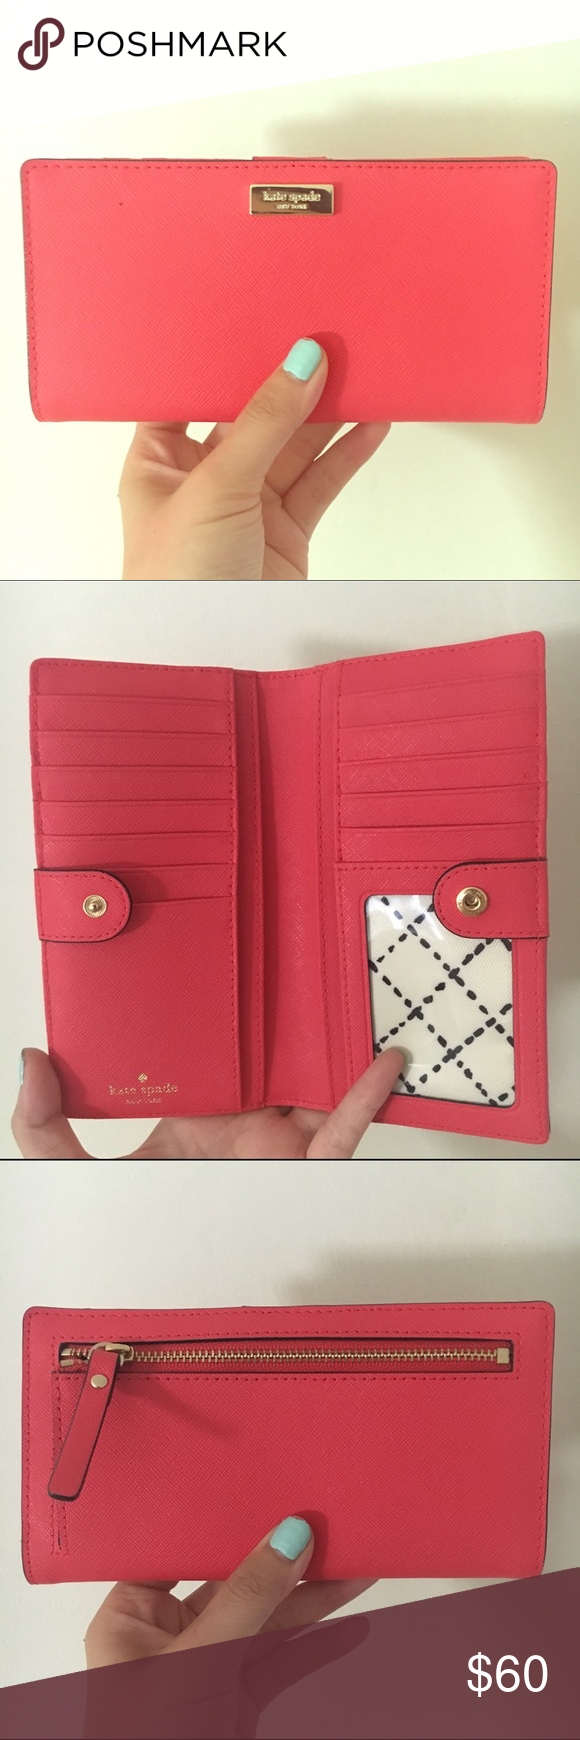 Kate spade: mikas pond stacy PINK LIKE NEW. More magenta. Cute for summer day outing. kate spade Bags Wallets